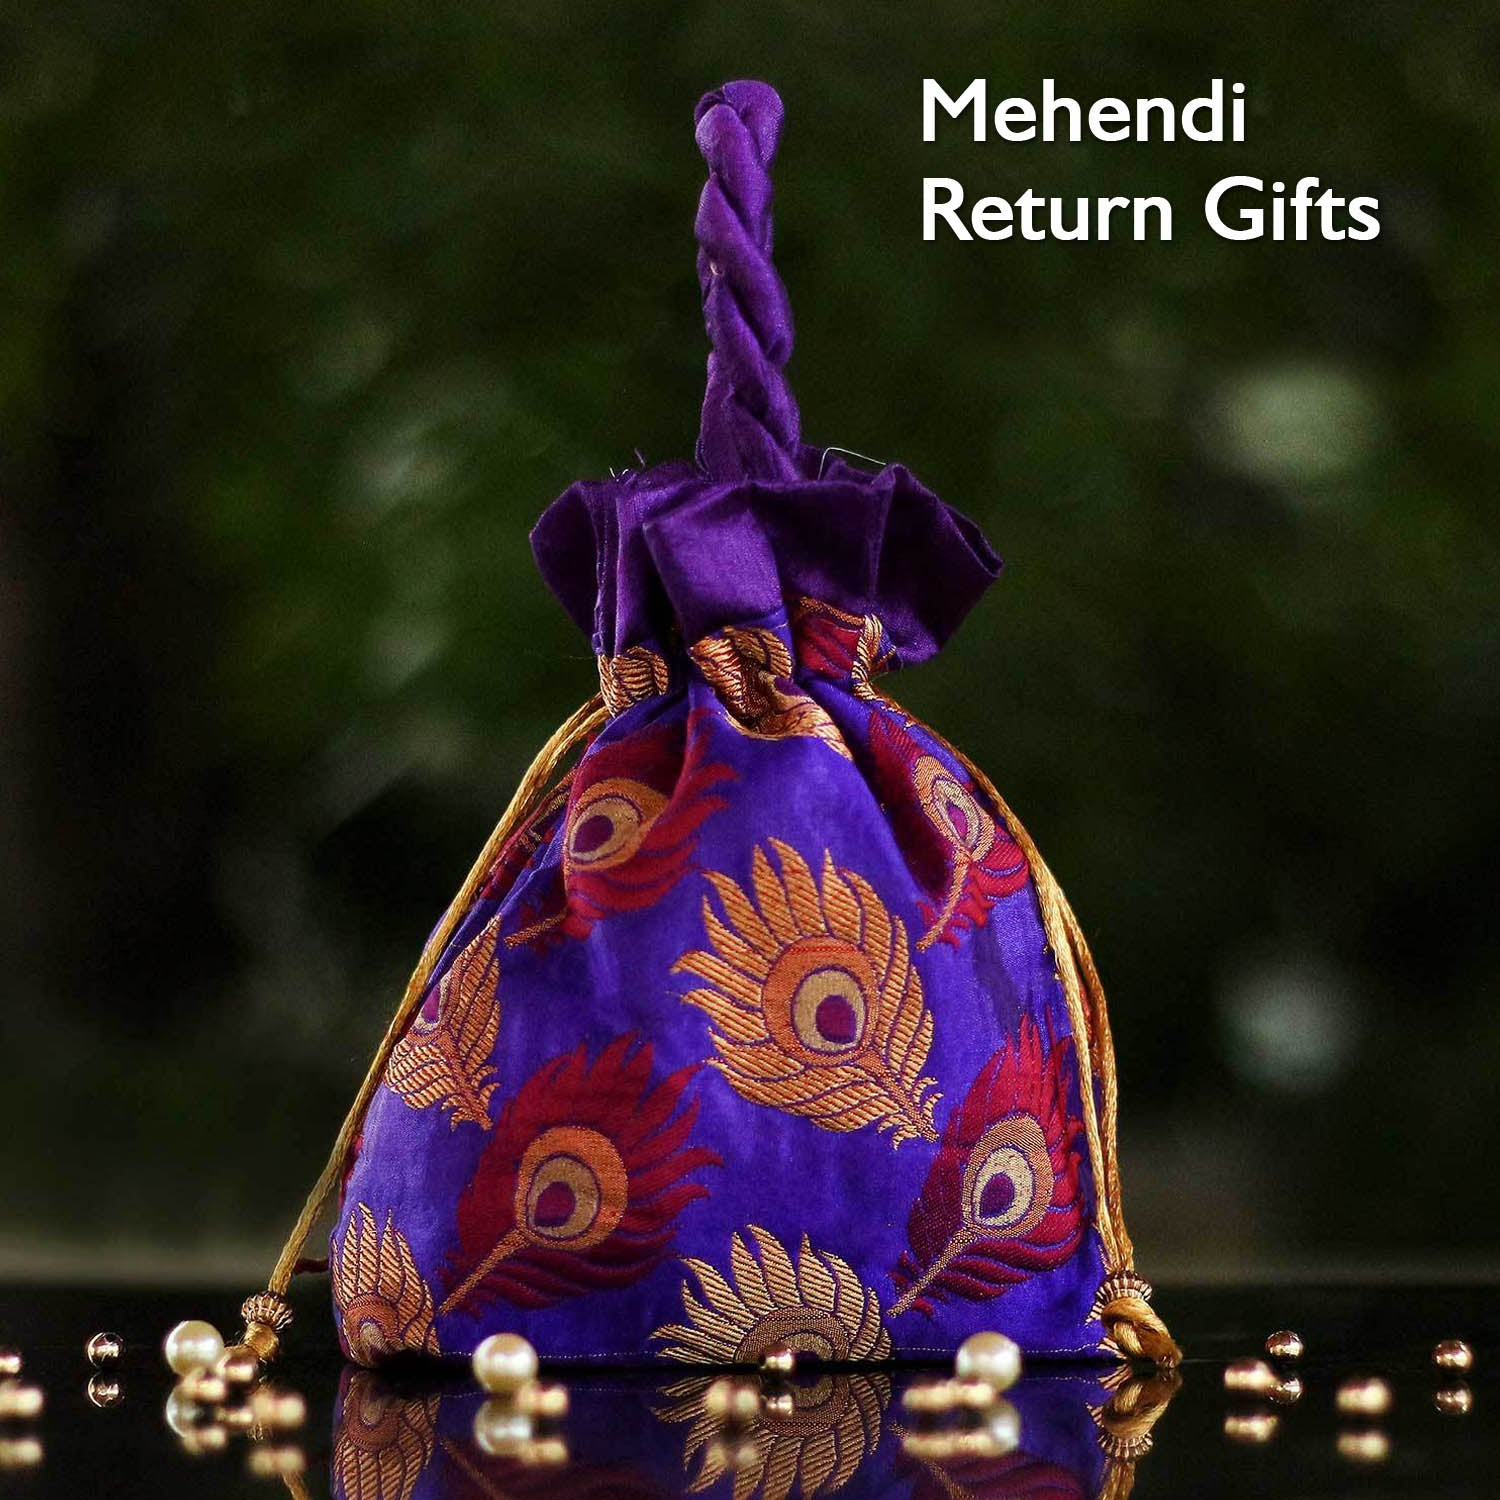 Wedding Return Gifts For Friends: Wedding Return Gifts Online